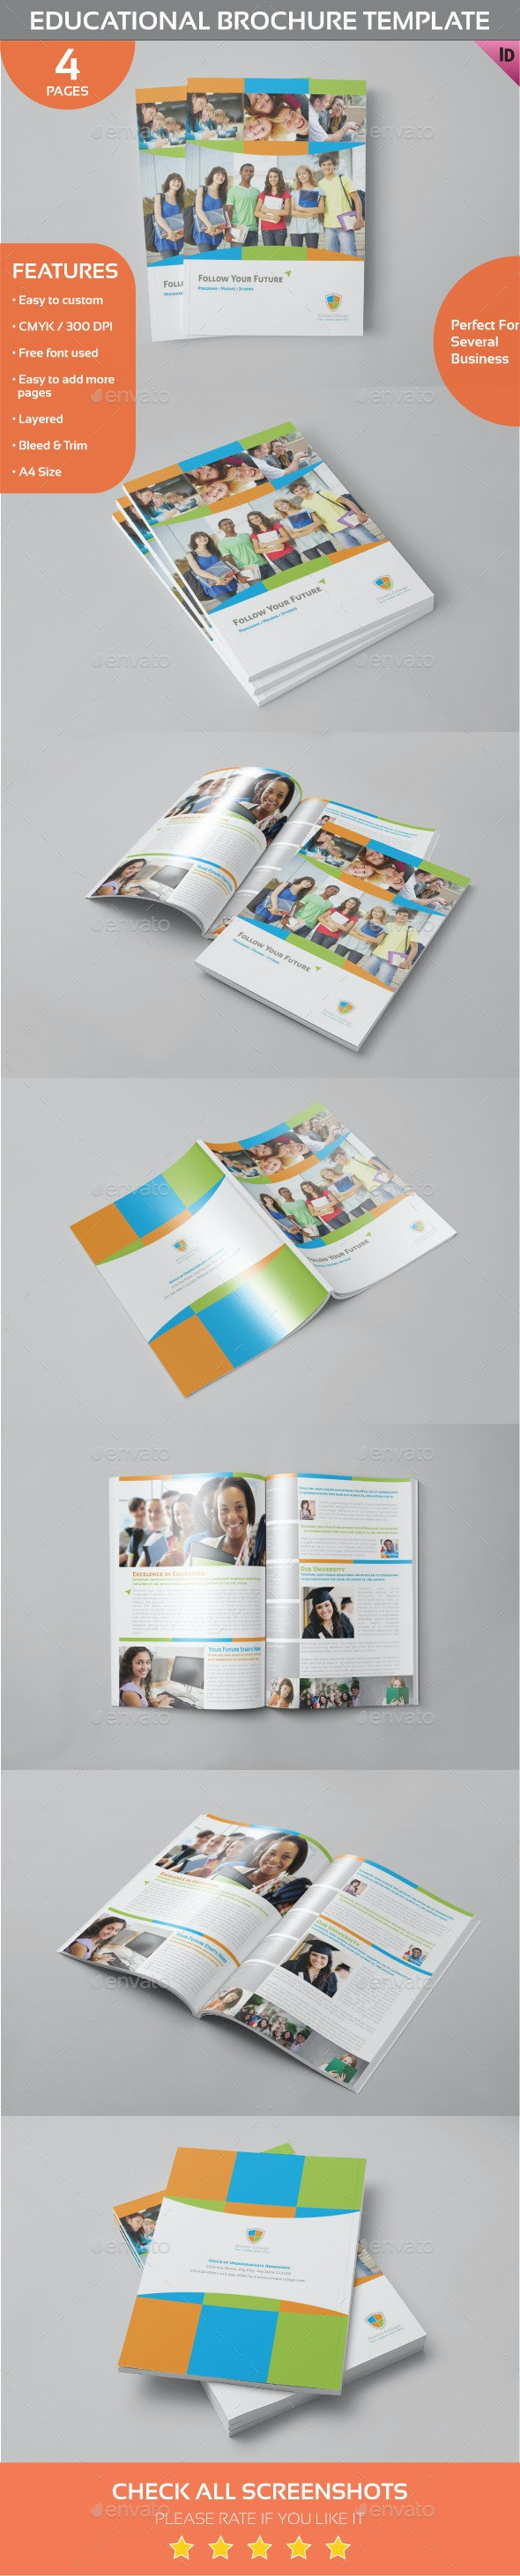 Educational Brochure Template - Informational Brochures